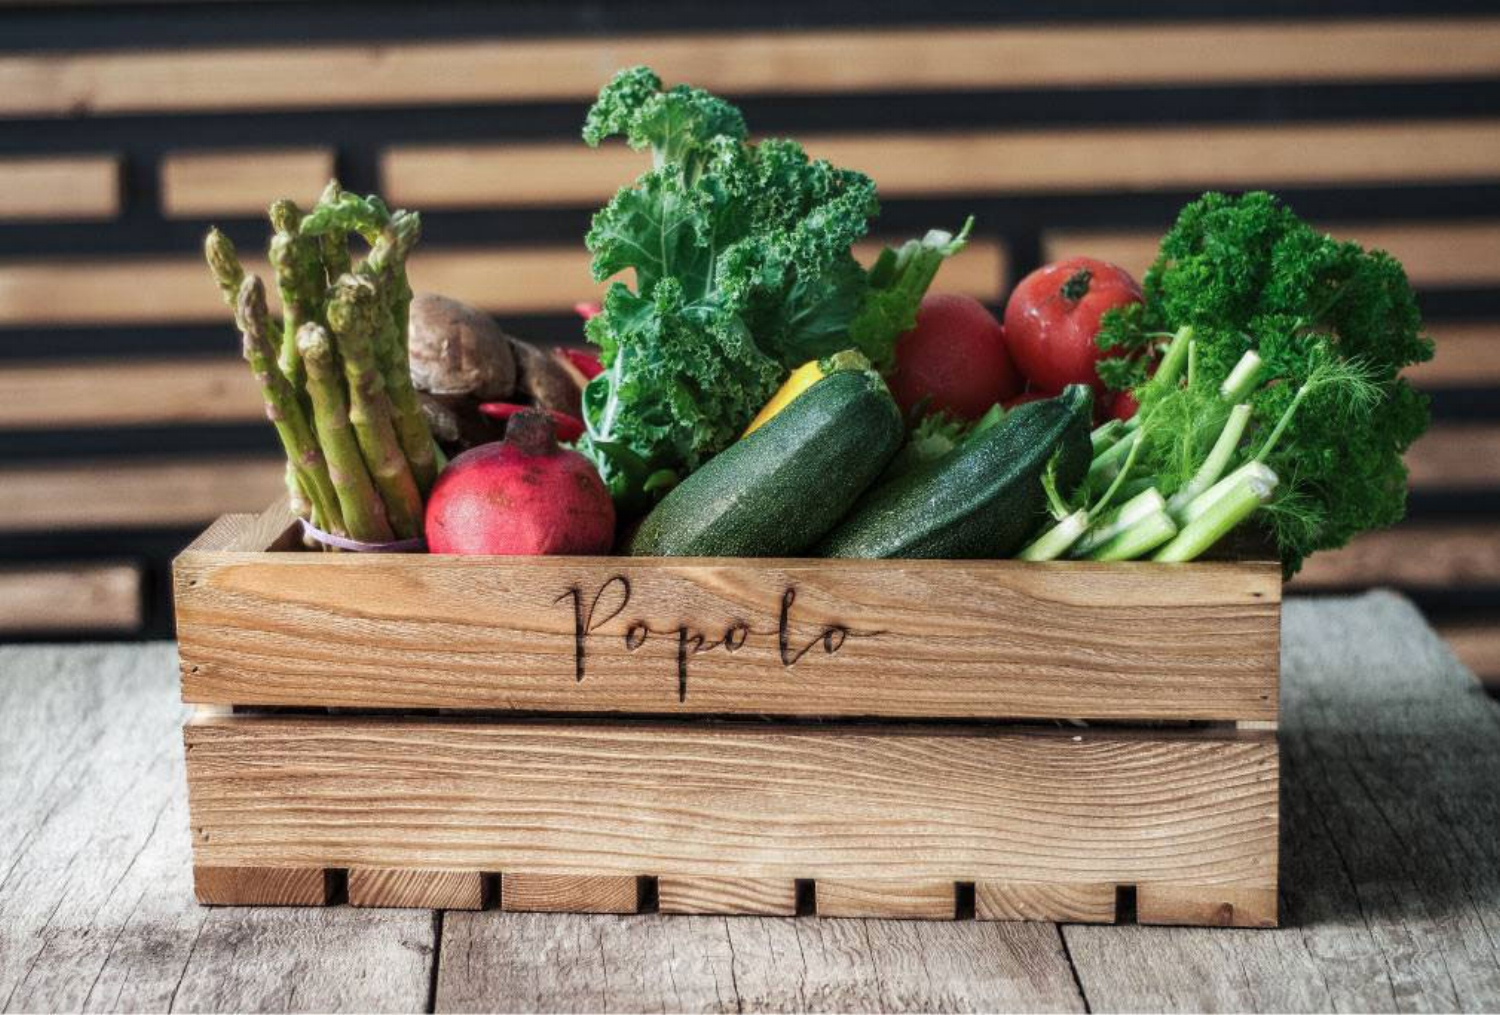 popolo beirut branding vegetable case